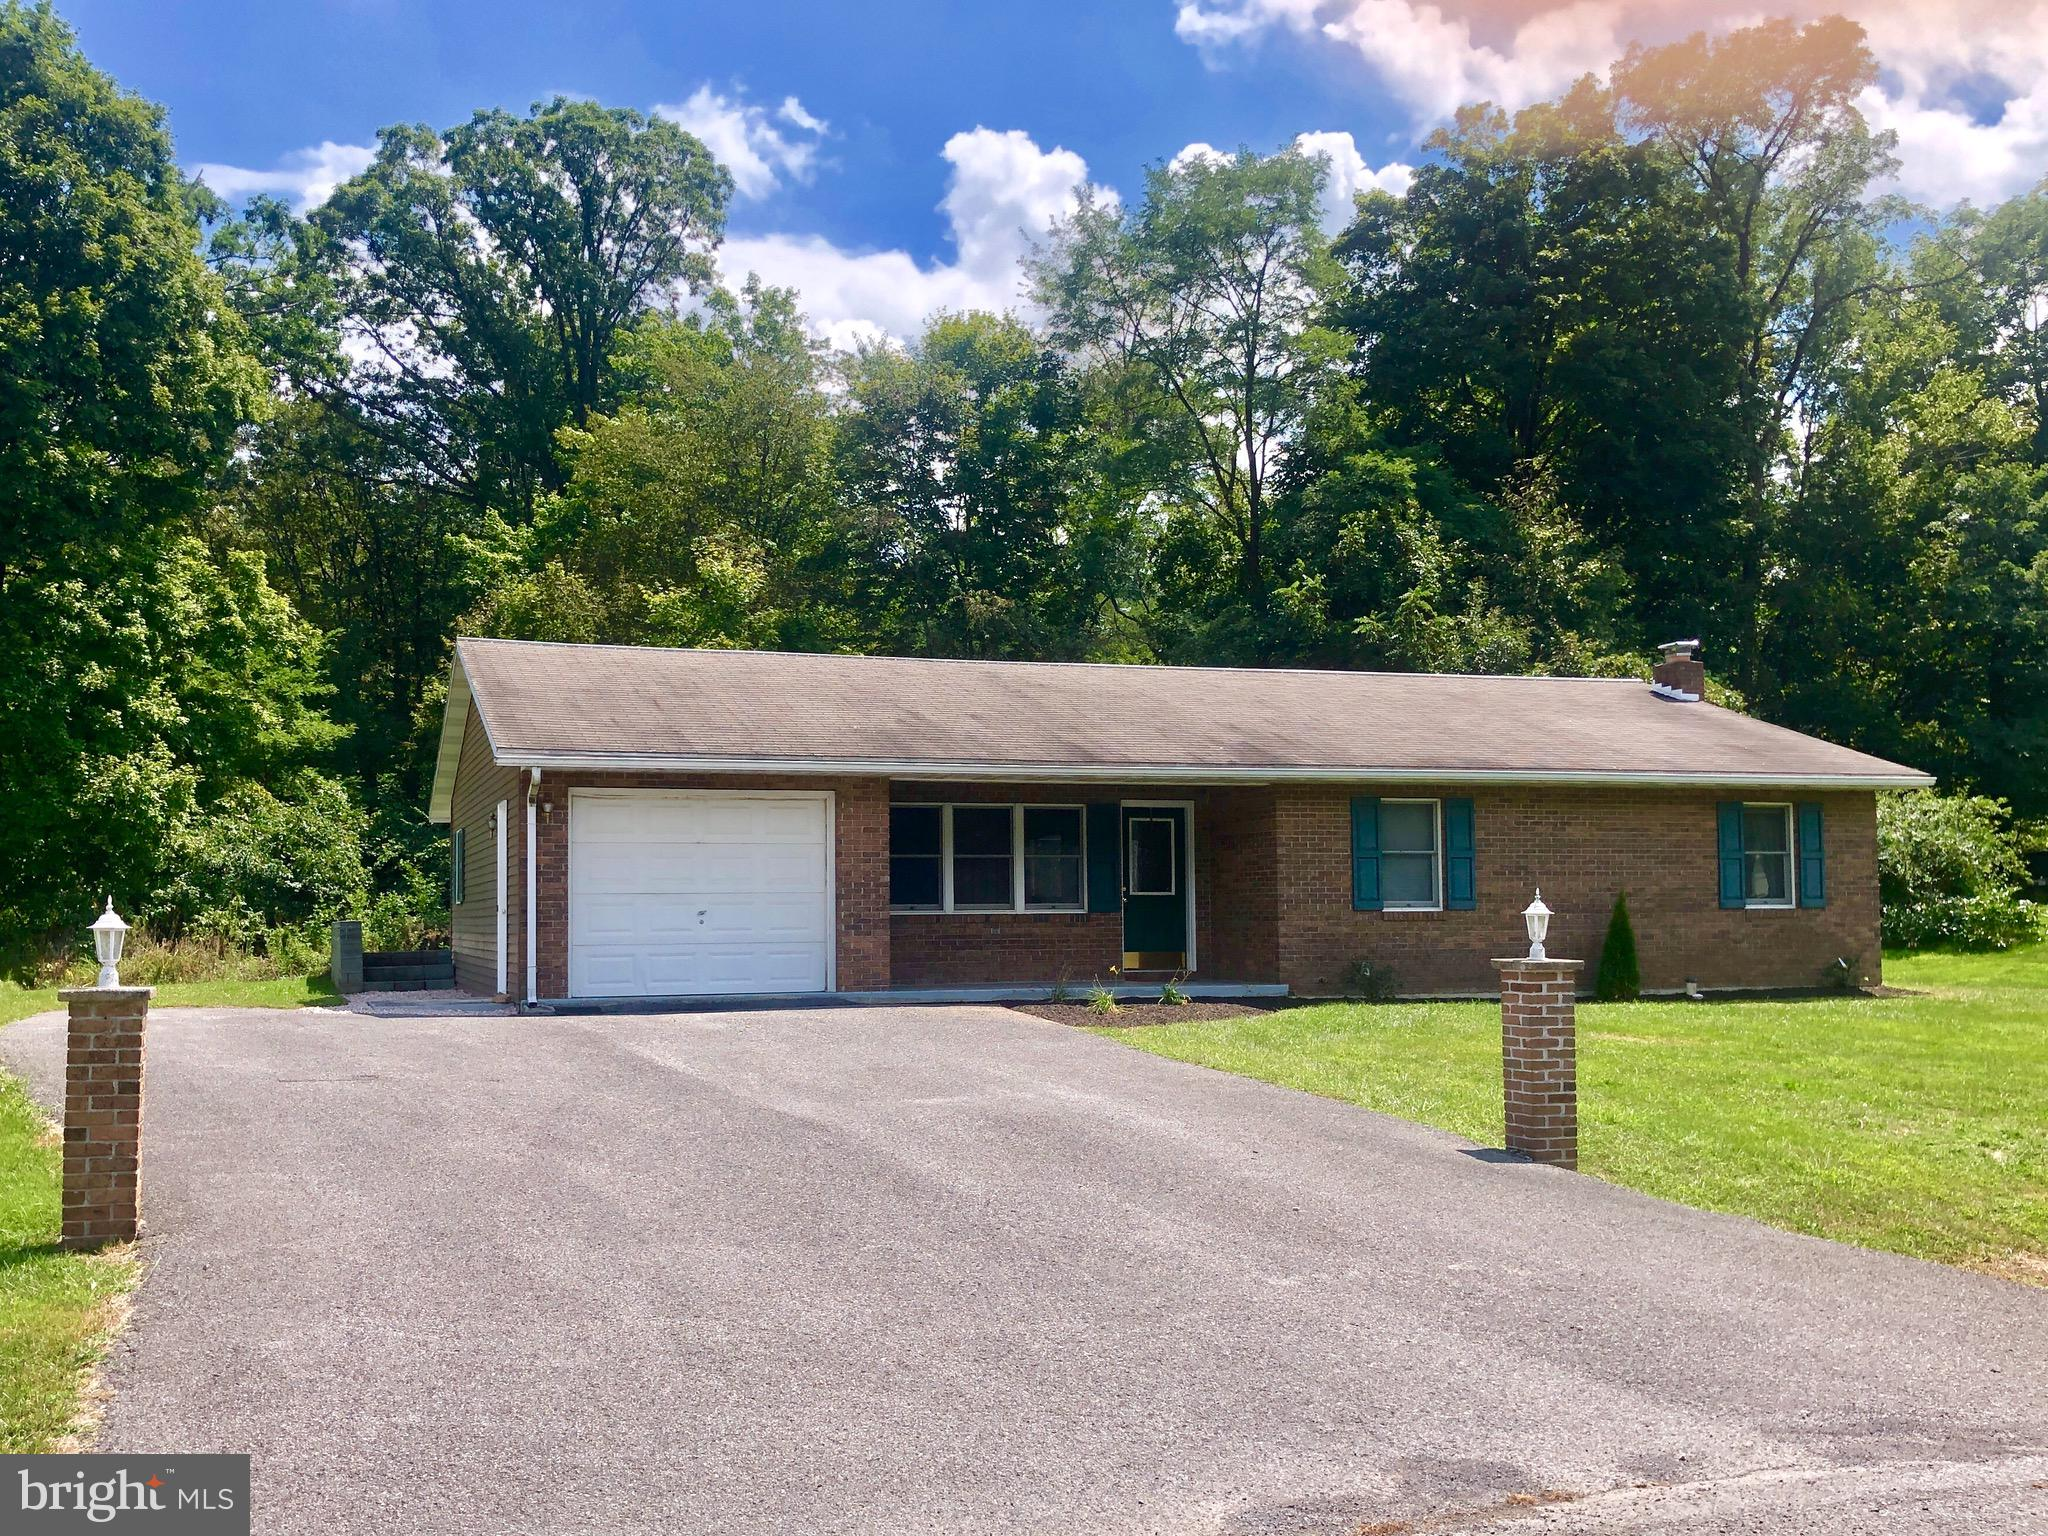 308 COOPER LANE, MC CONNELLSBURG, PA 17233